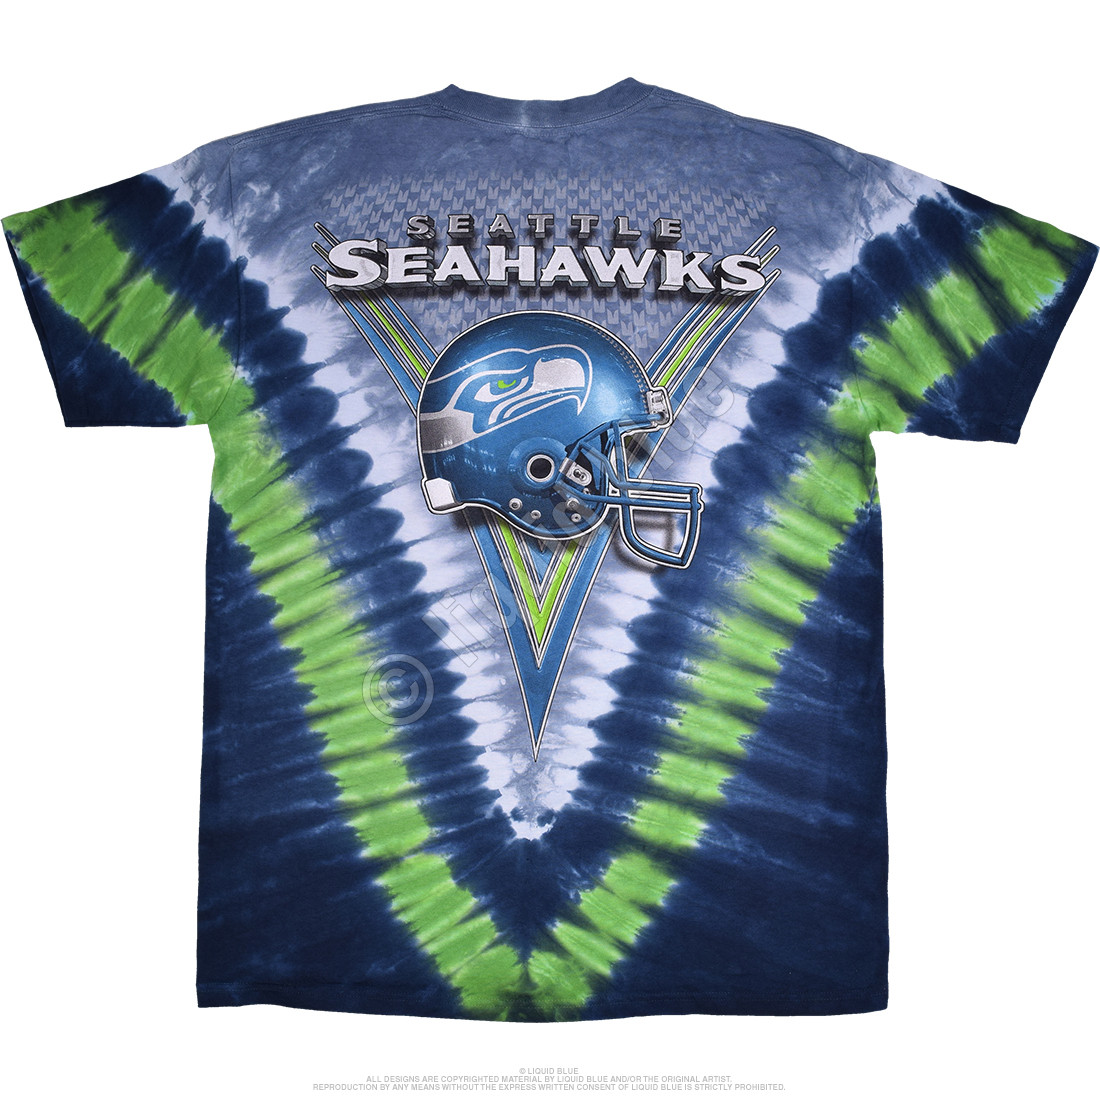 Seattle Seahawks V Tie-Dye T-Shirt